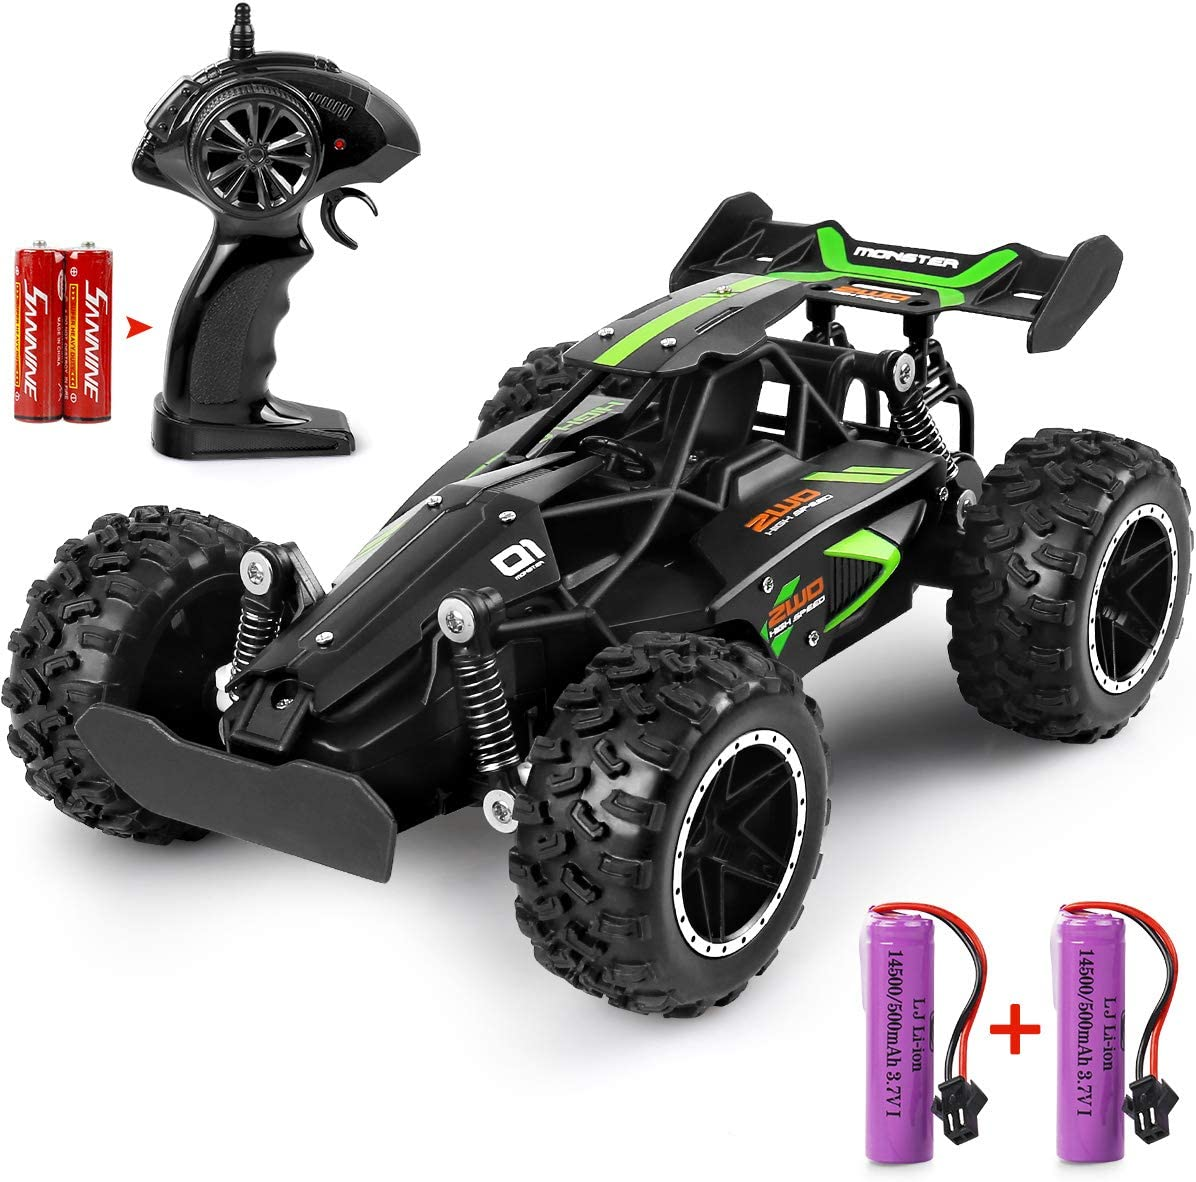 MOSFiATA G03063R RC 1:18 Scale 2.4Ghz Remote Control Trucks, Rechargeable Batteries (Green+Black) WAS £26.99 NOW £13.49 w/code NLB9LAL4 + 5% voucher on listing @ Amazon